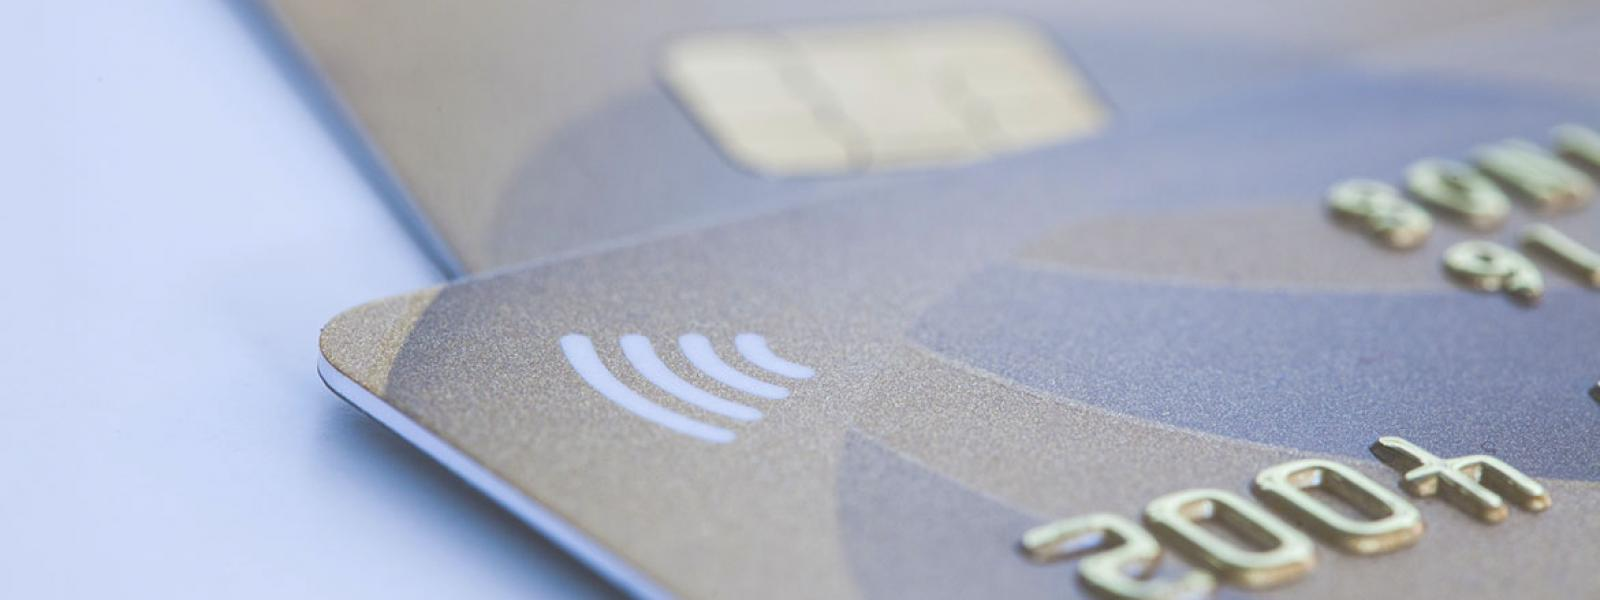 contactless banking cards